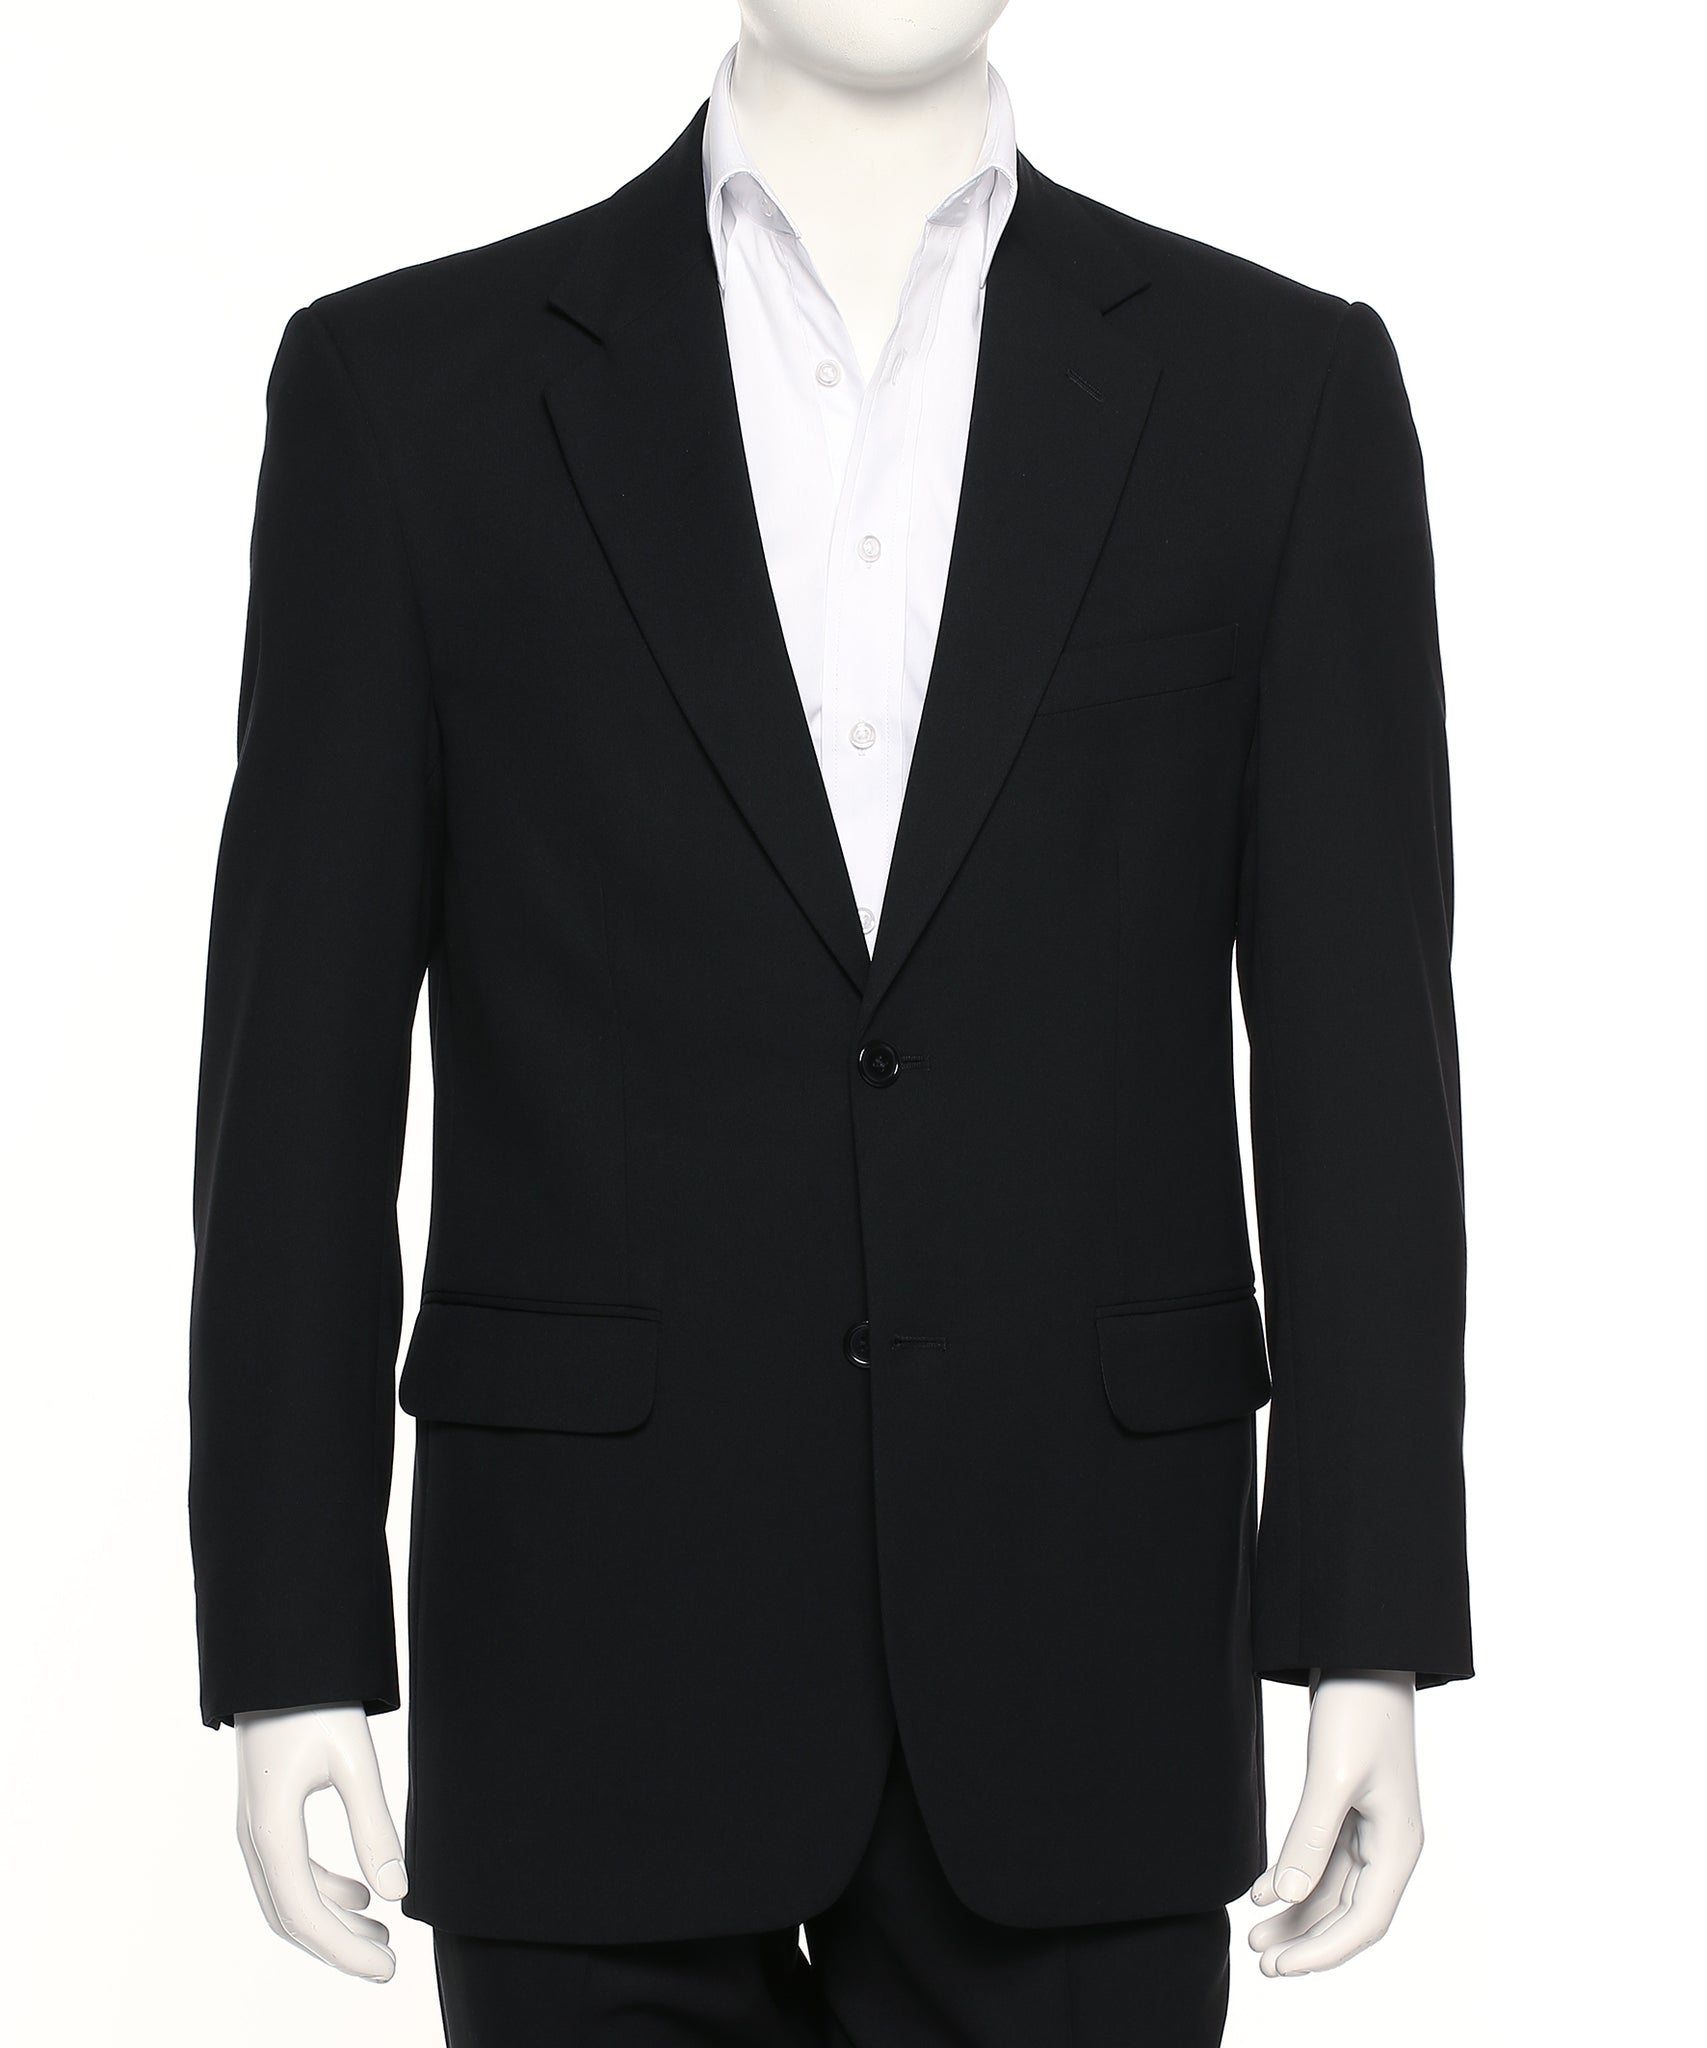 8612-MF-BLK: Single breasted two button jacket